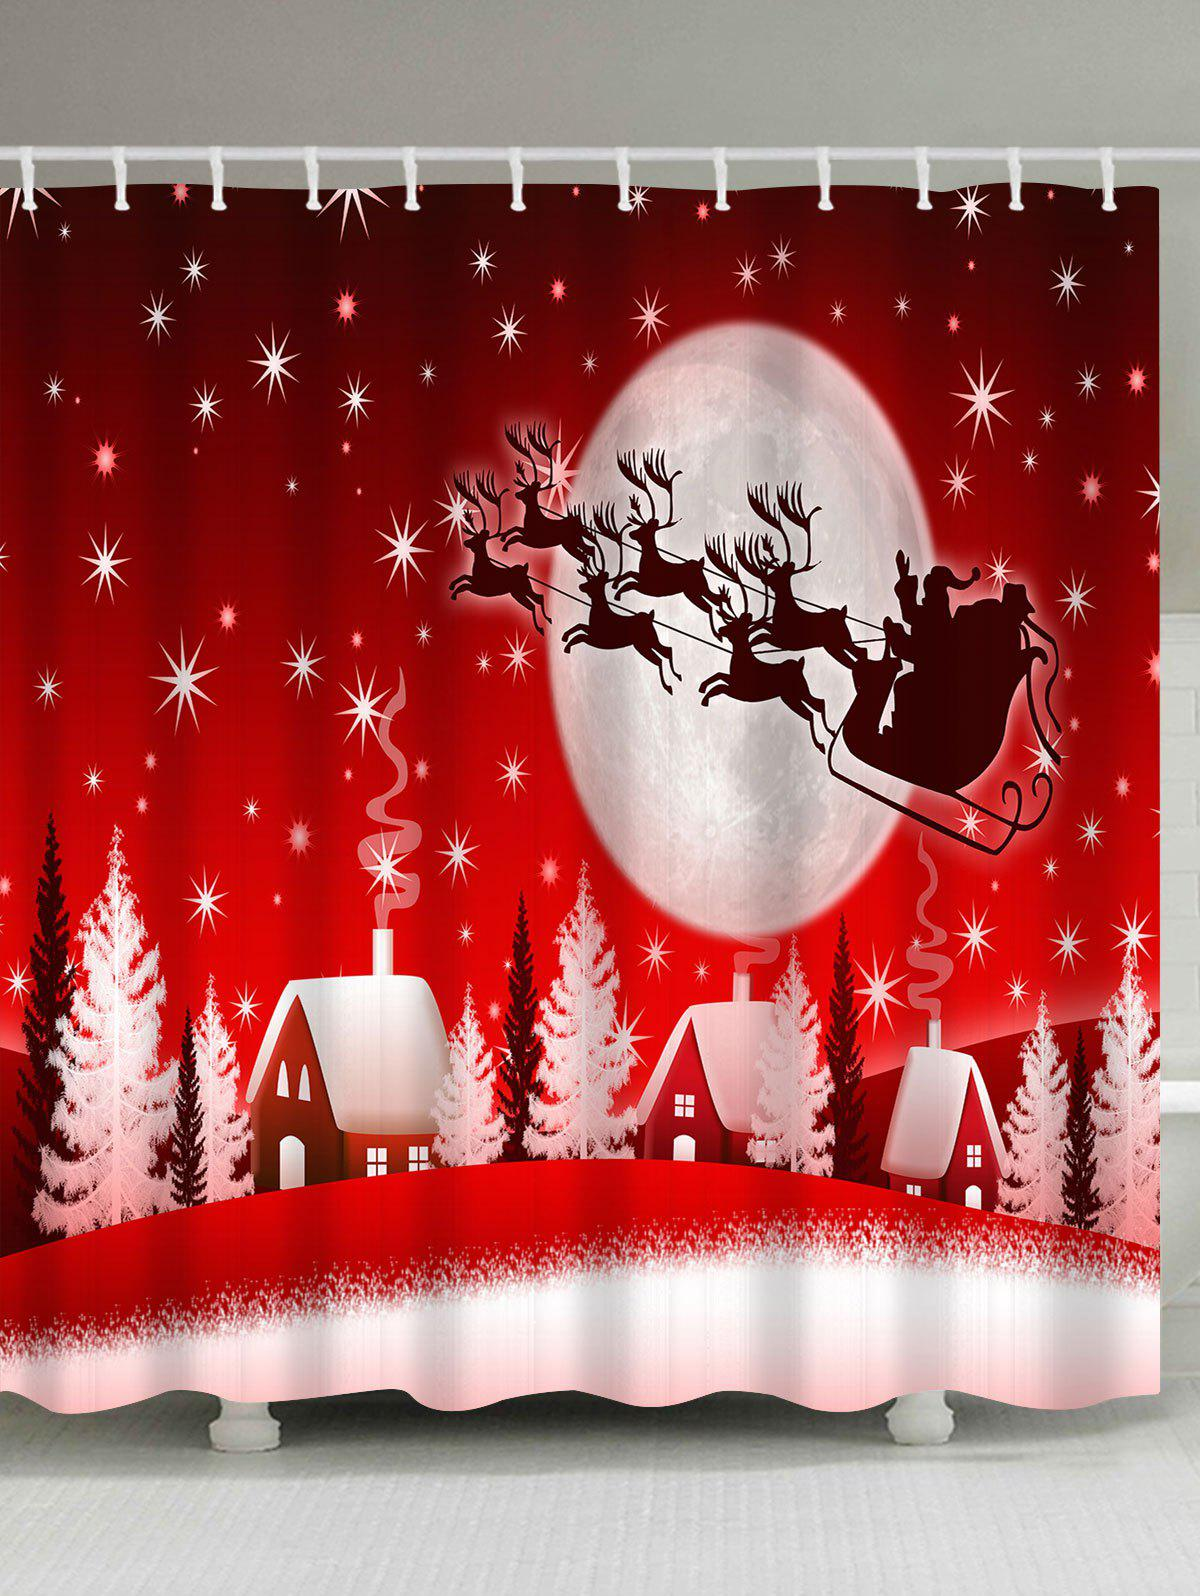 Christmas Sled Moon House Waterproof Bath CurtainHOME<br><br>Size: W71 INCH * L79 INCH; Color: RED; Products Type: Shower Curtains; Materials: Polyester; Pattern: Moon; Style: Festival; Number of Hook Holes: W59 inch*L71 inch: 10; W71 inch*L71 inch: 12; W71 inch*L79 inch: 12; Package Contents: 1 x Shower Curtain 1 x Hooks (Set);